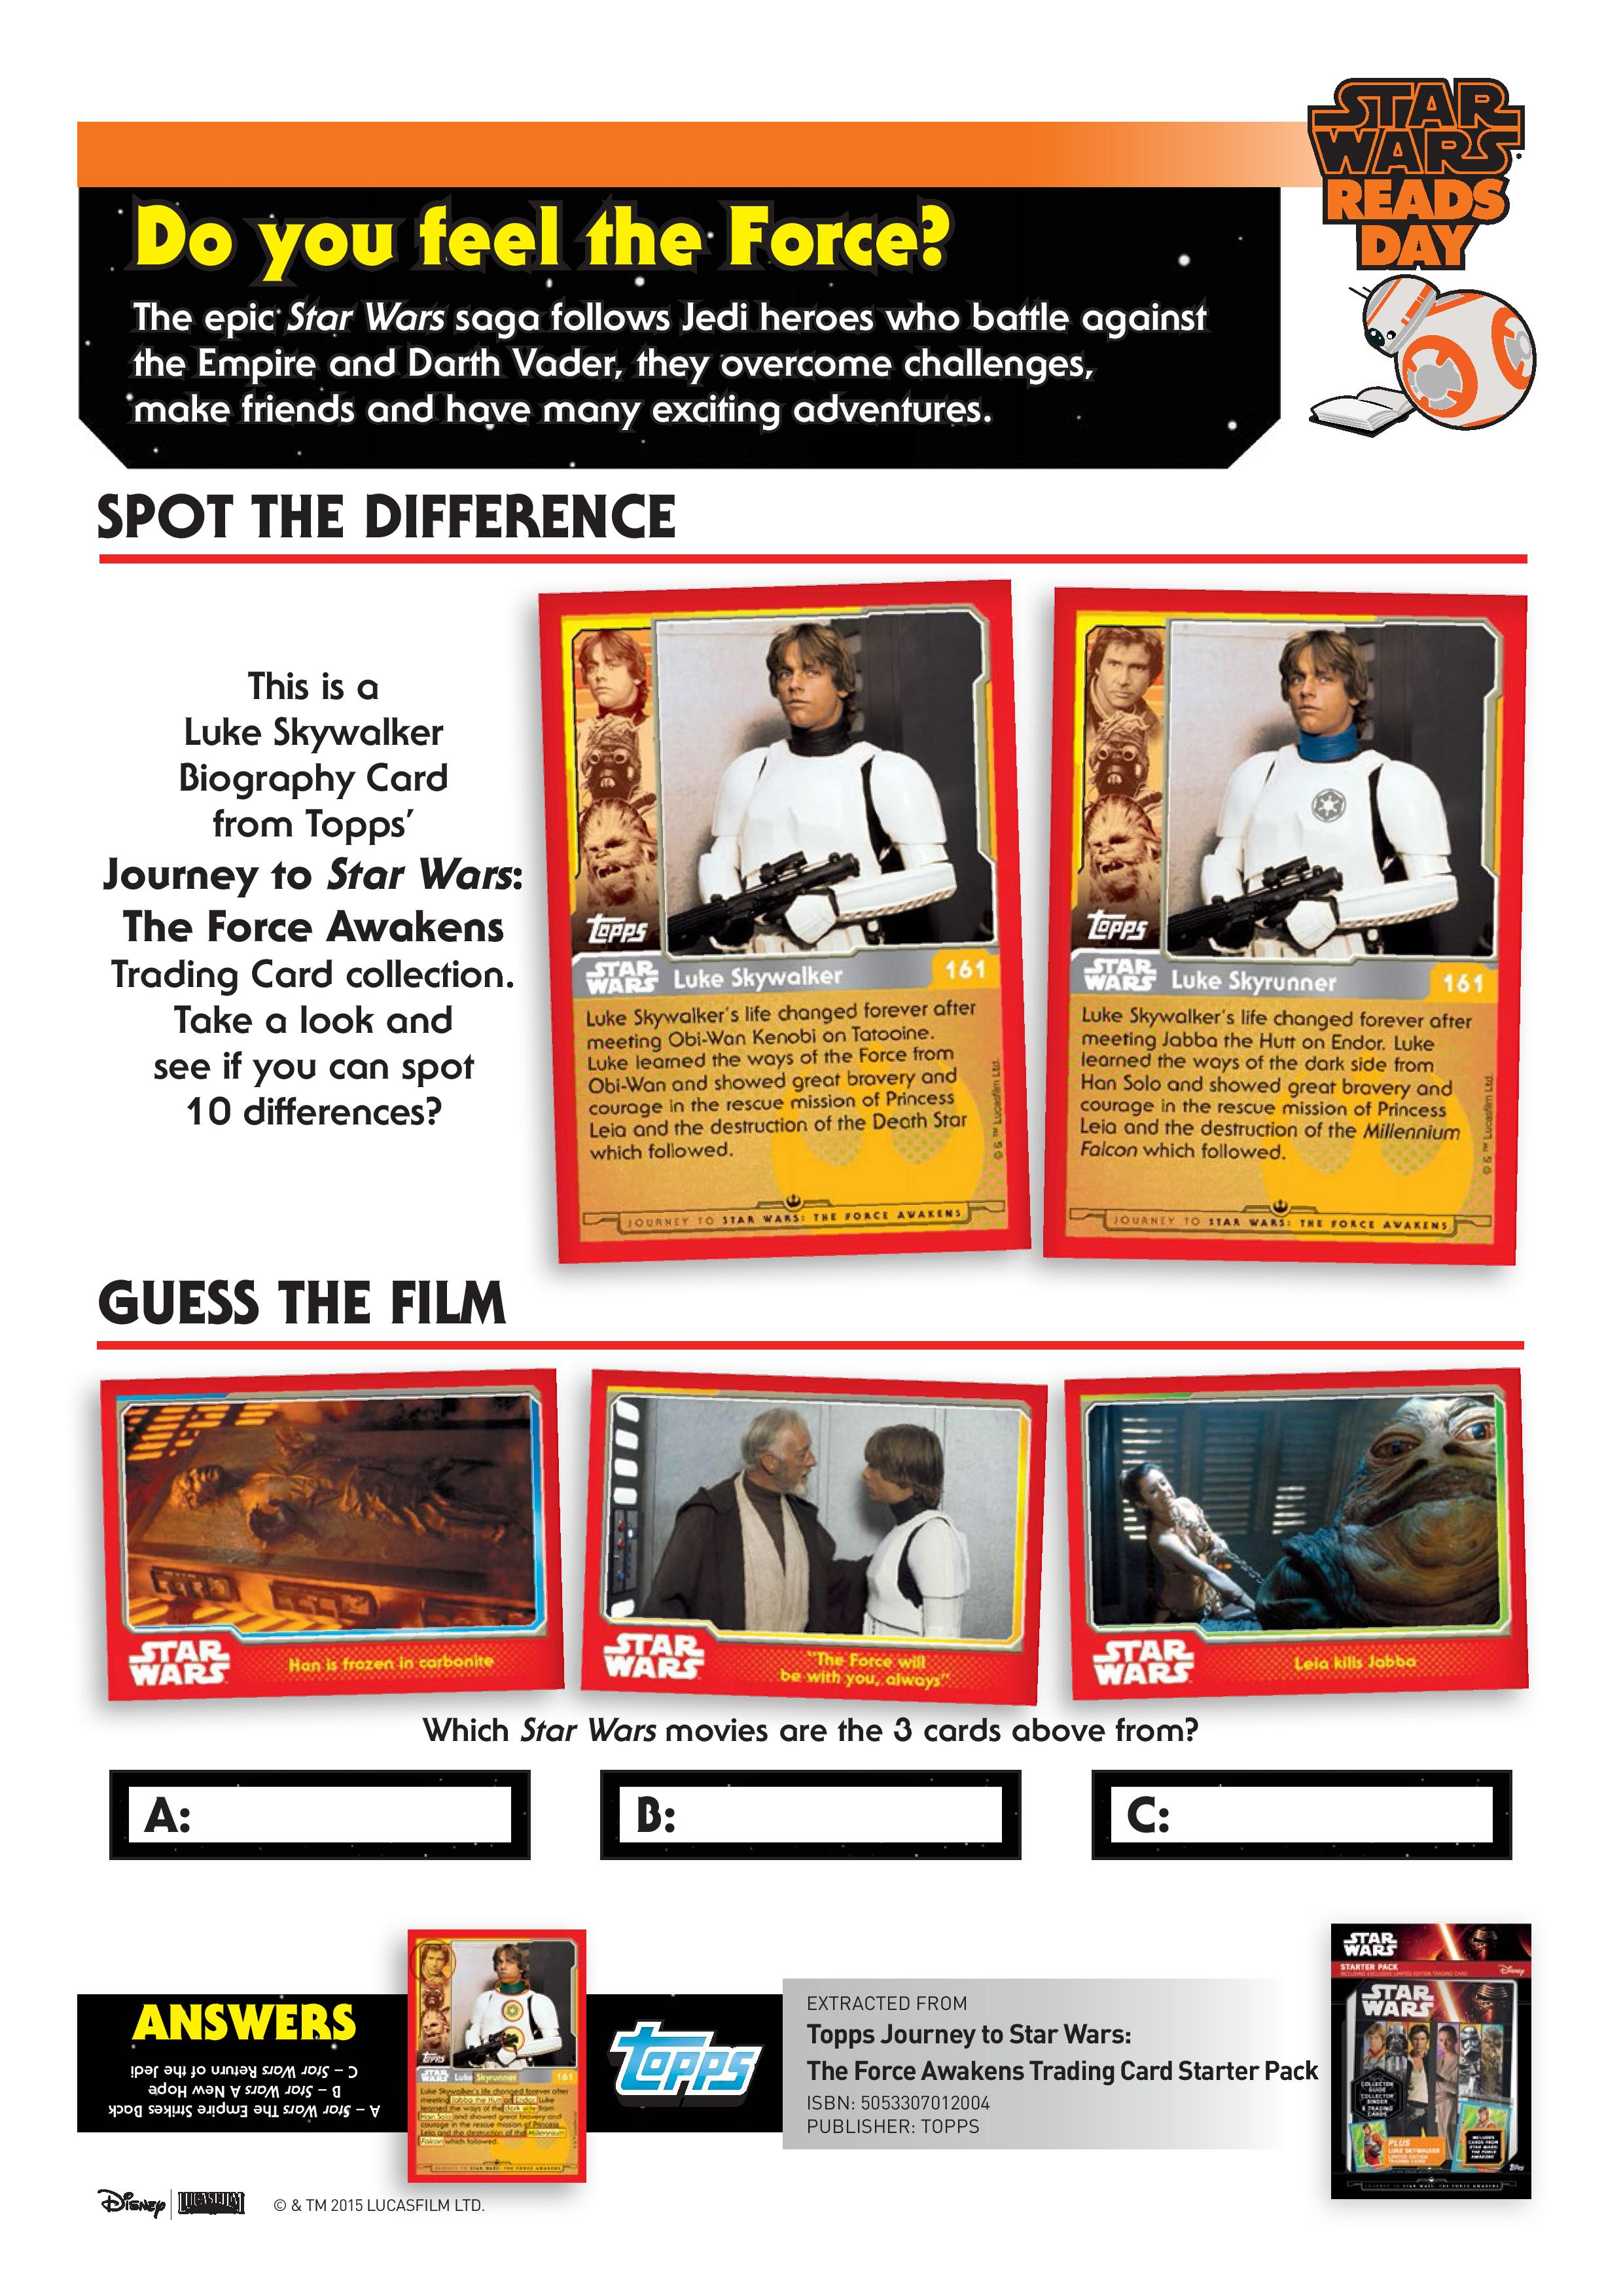 Star Wars Spot the Difference and Guess the Film Quizzes